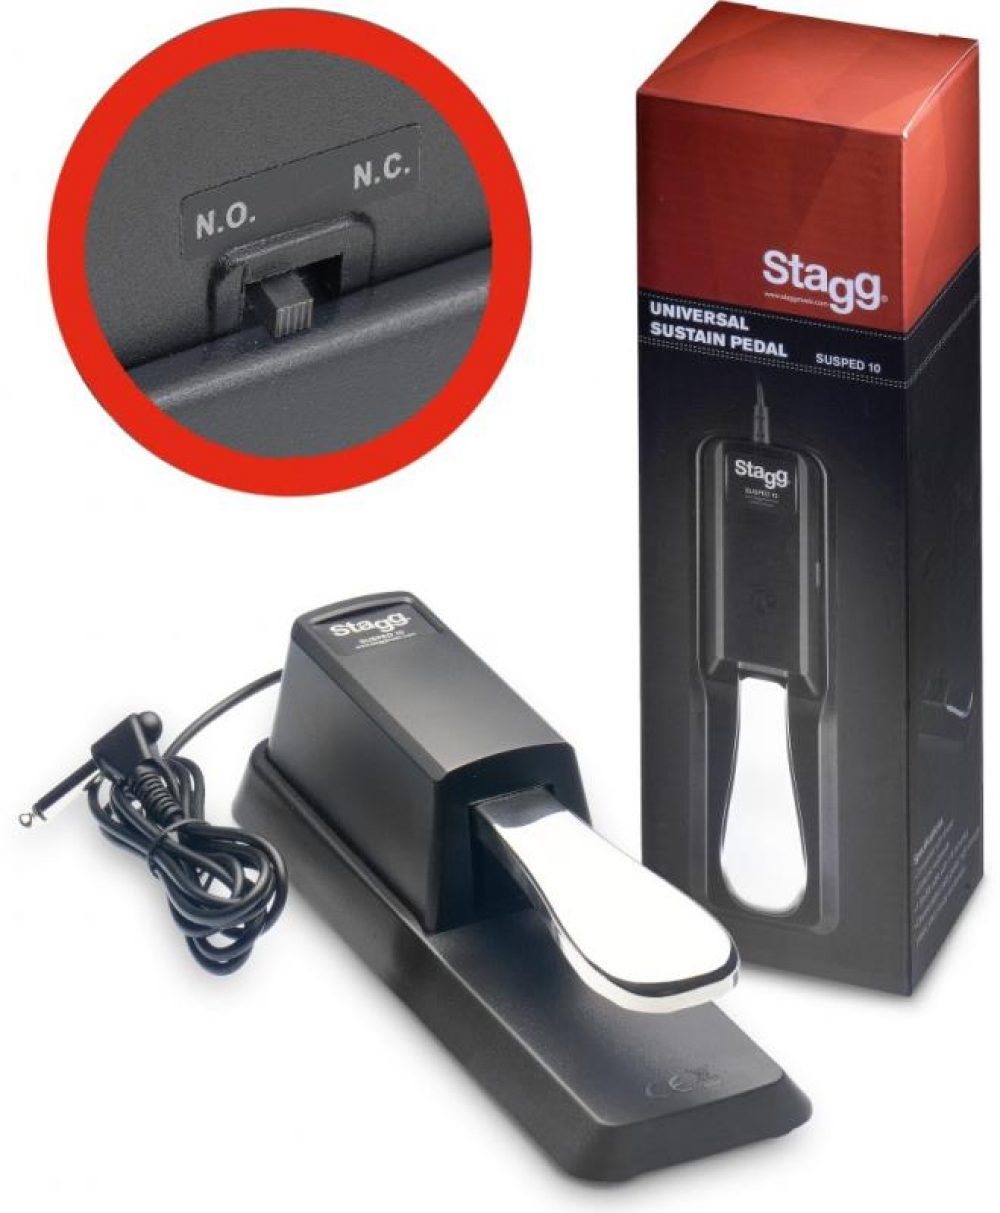 Stagg Sustain Pedal SUSPED 10